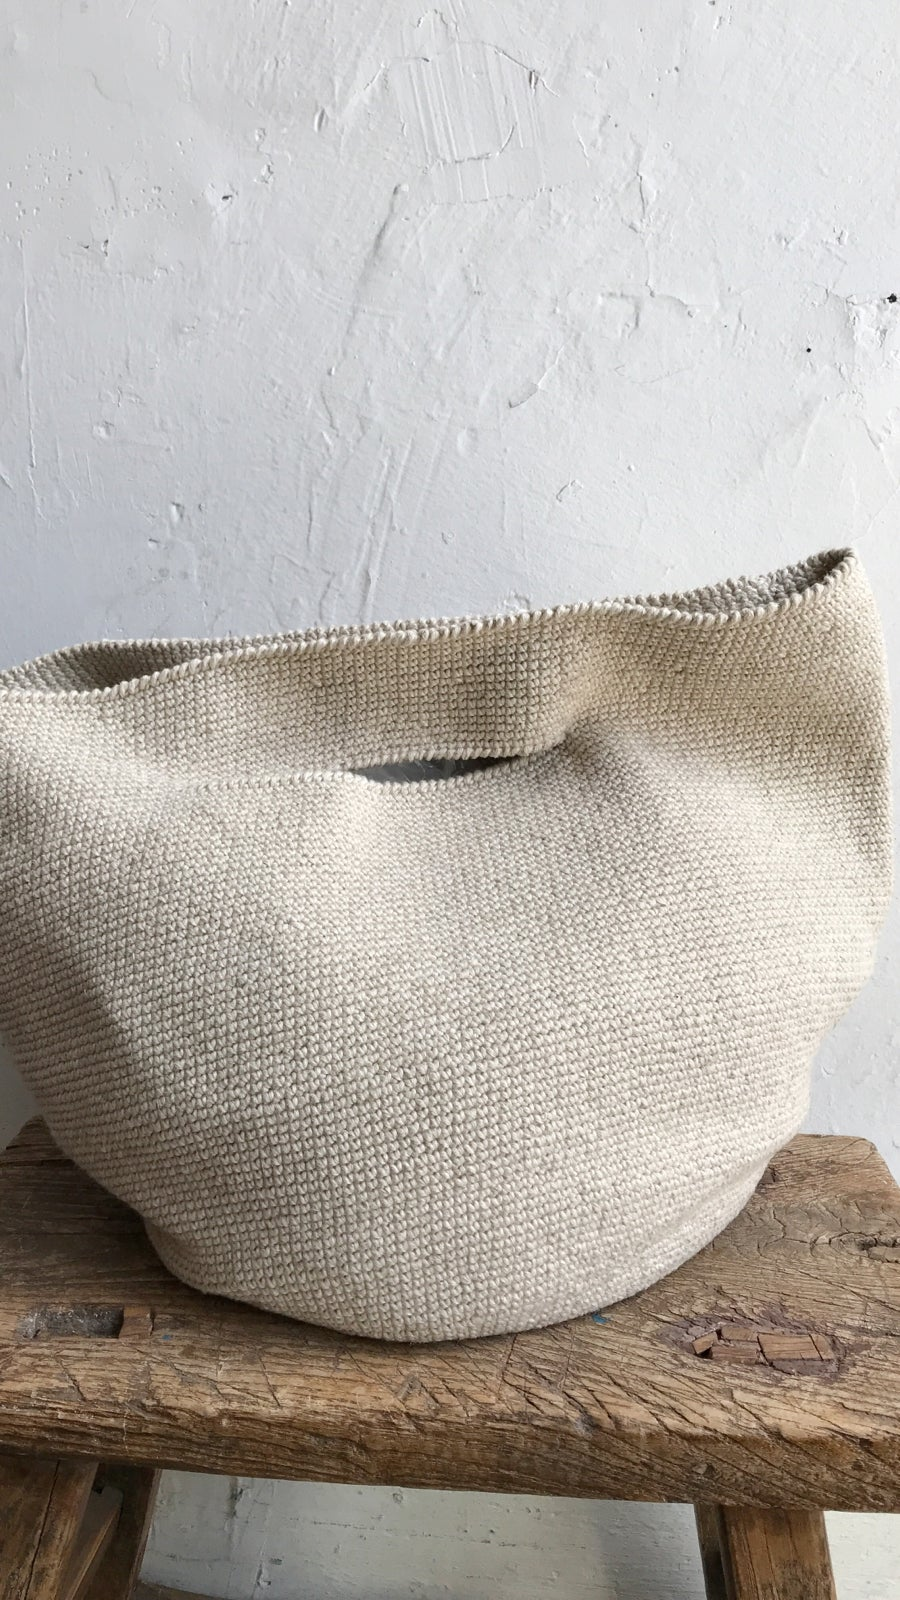 Image of Lauren Manoogian Crochet Bowl Bag